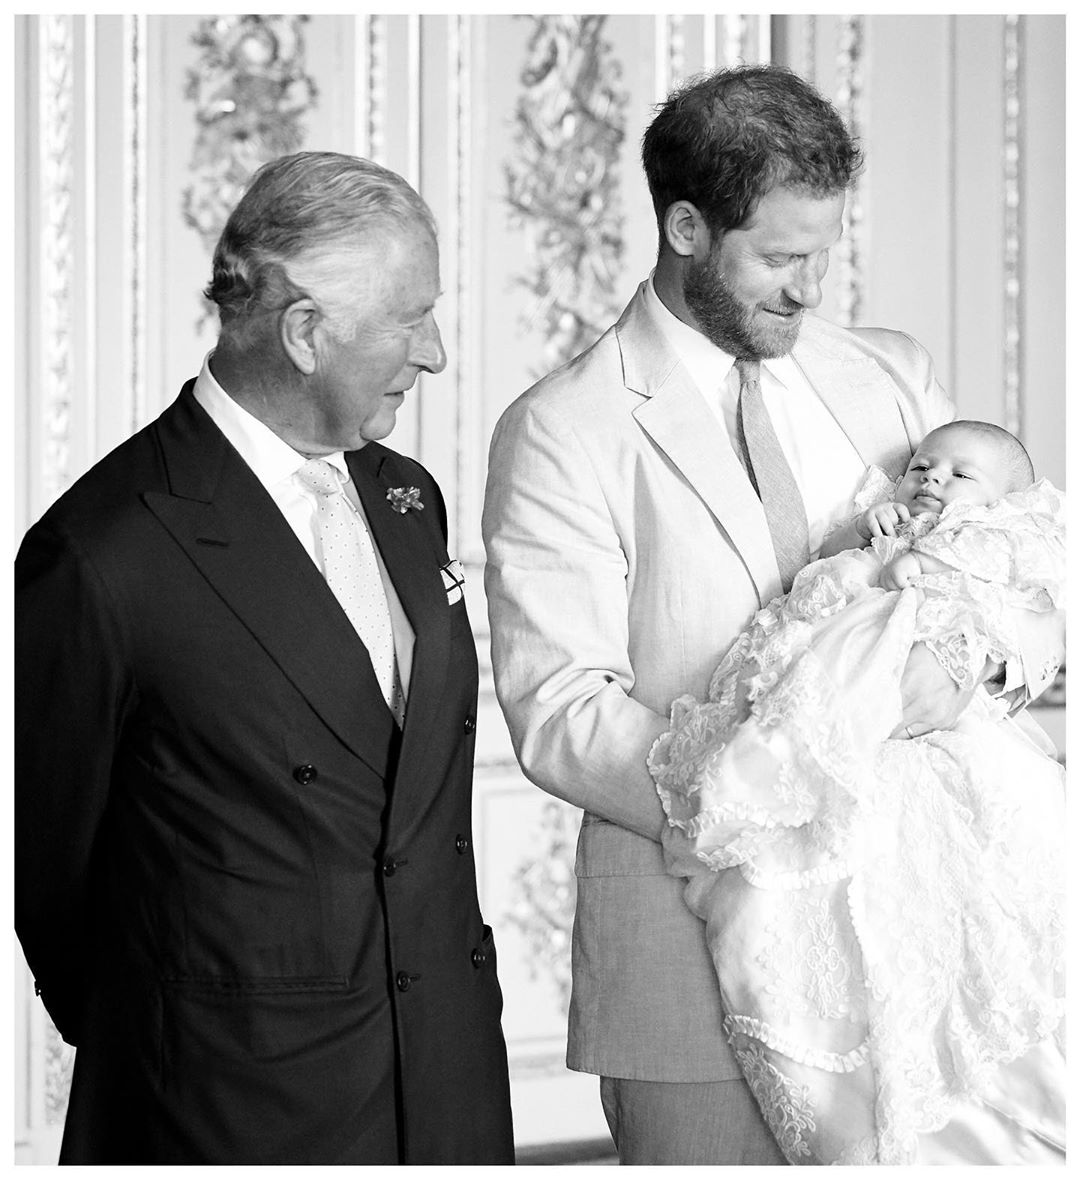 Our hearts are melting over this royally adorable family moment. ❤️https://eonli.ne/2qWI0xu